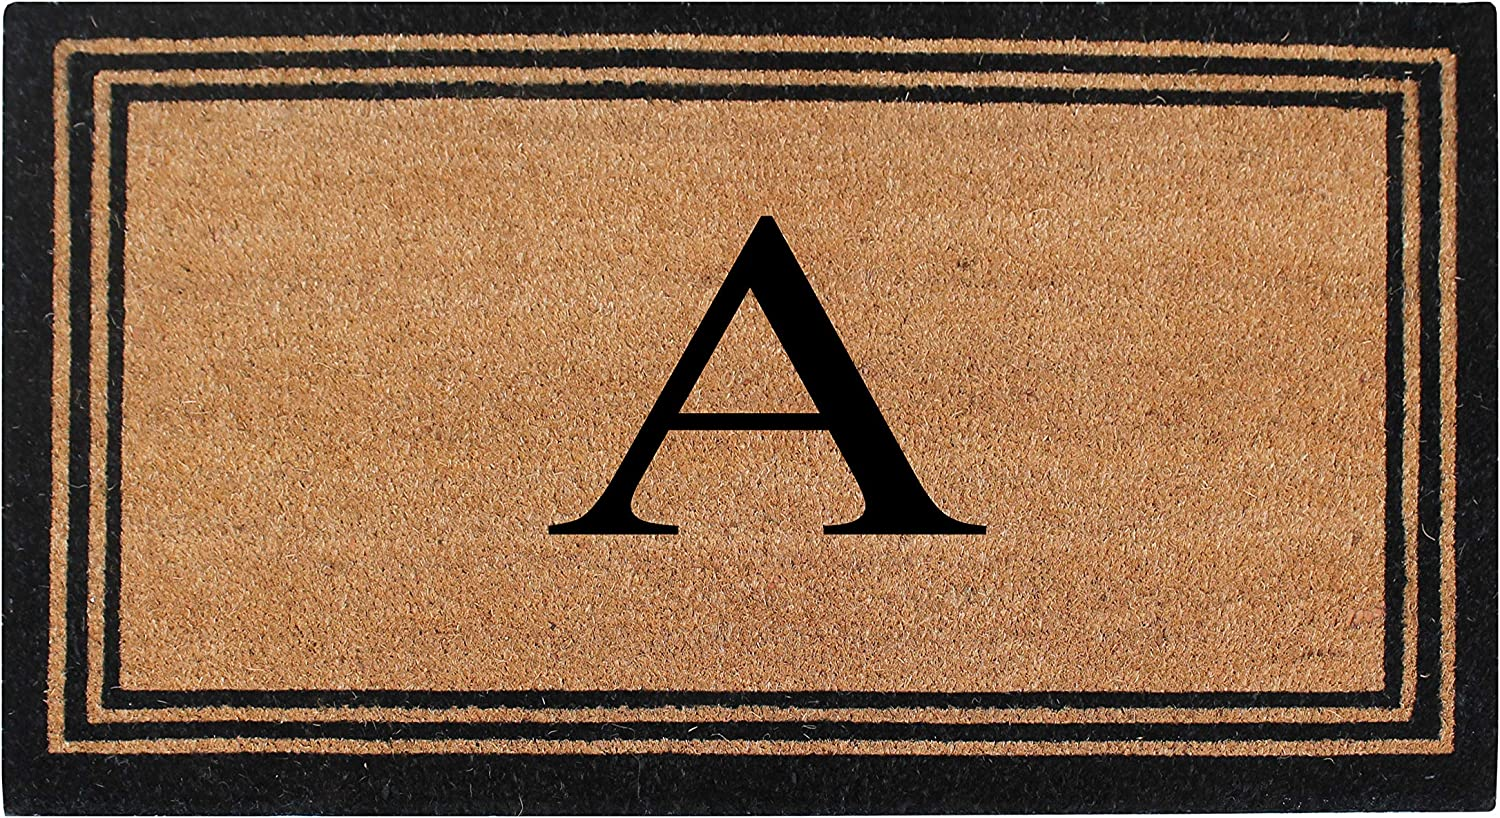 A1 Home Collections A1HOME200021-BR-Monogrammed A1HC Pure Natural Coir Doormat with Heavy Duty PVC Backing Monogrammed, A